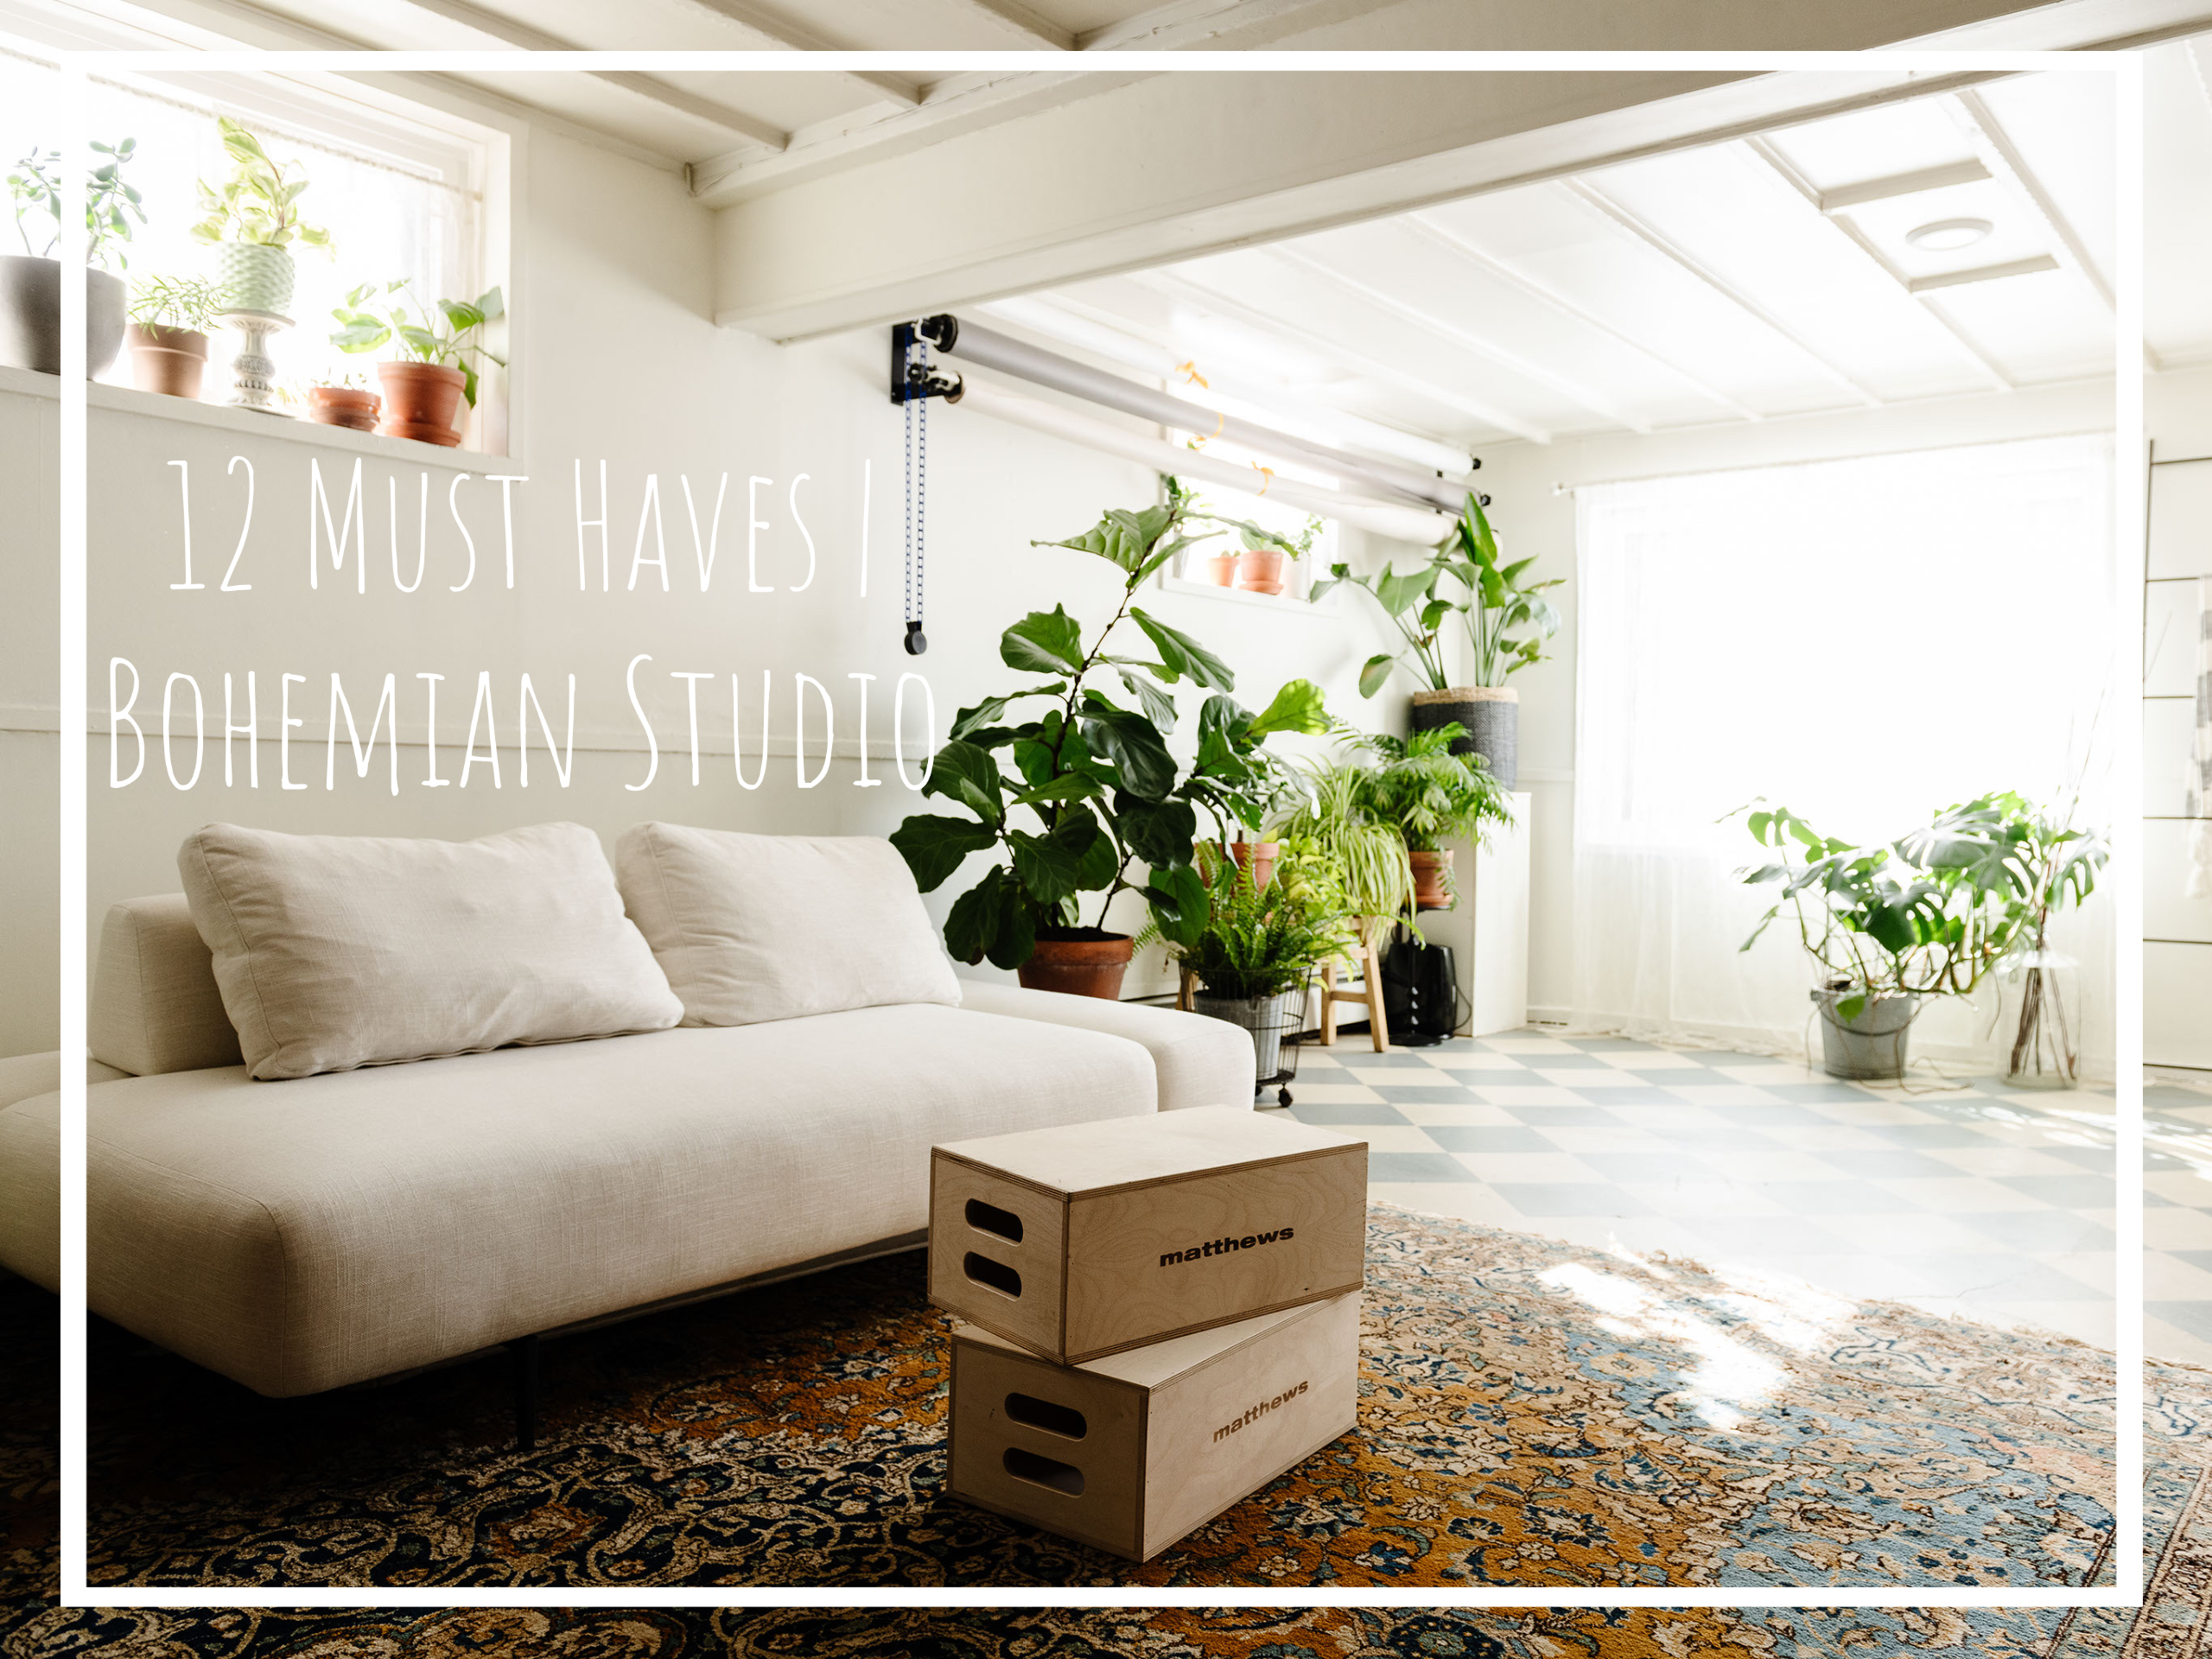 12 Must Haves for Your Bohemian Studio